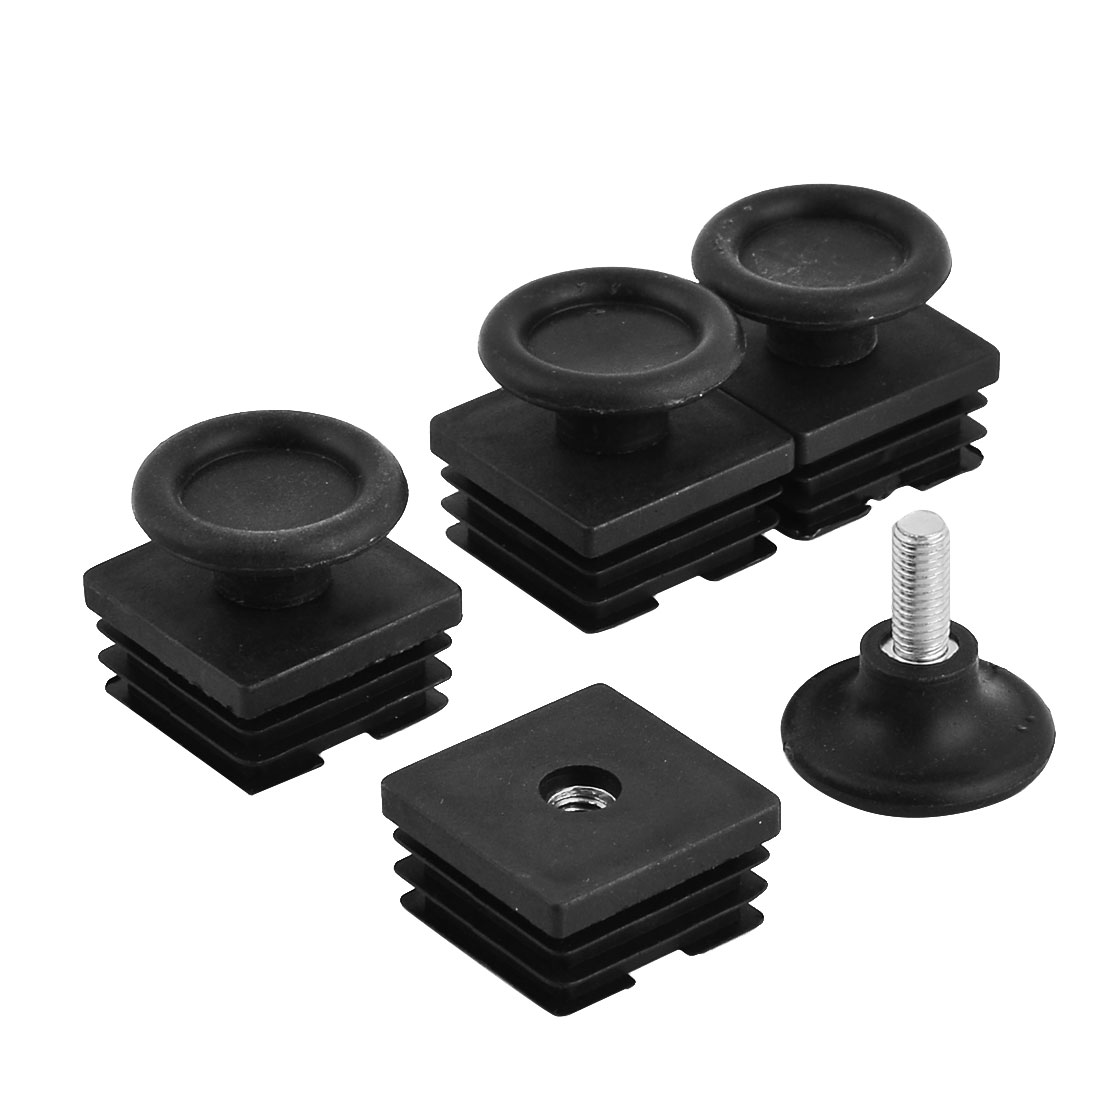 Furniture Accessory Leveling Feet Rectangle Tube Pipe Inserts Bungs Black 4 Sets